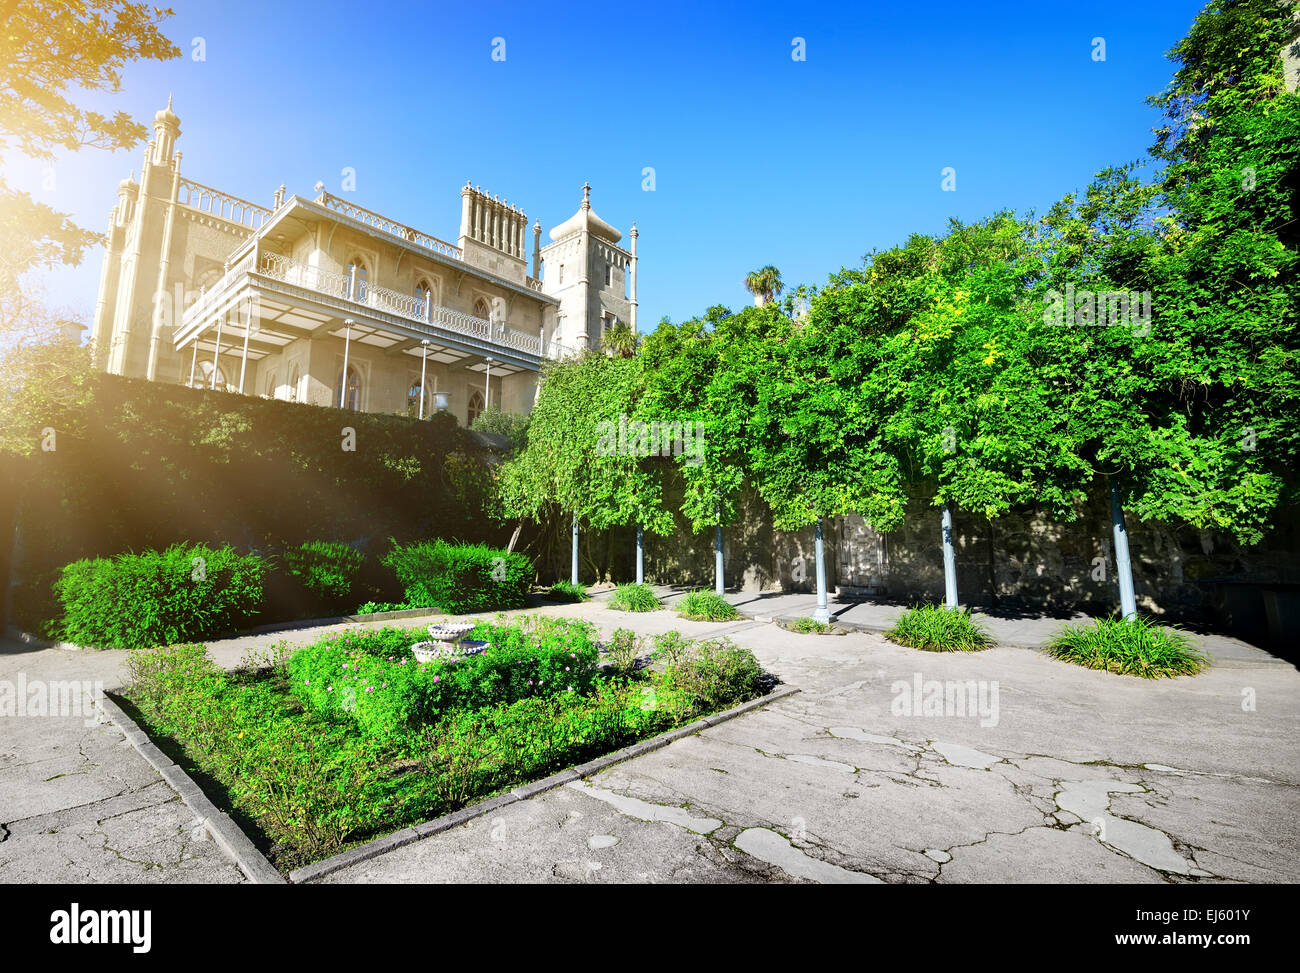 Green flowerbed in Vorontsov's residence at sunny day - Stock Image